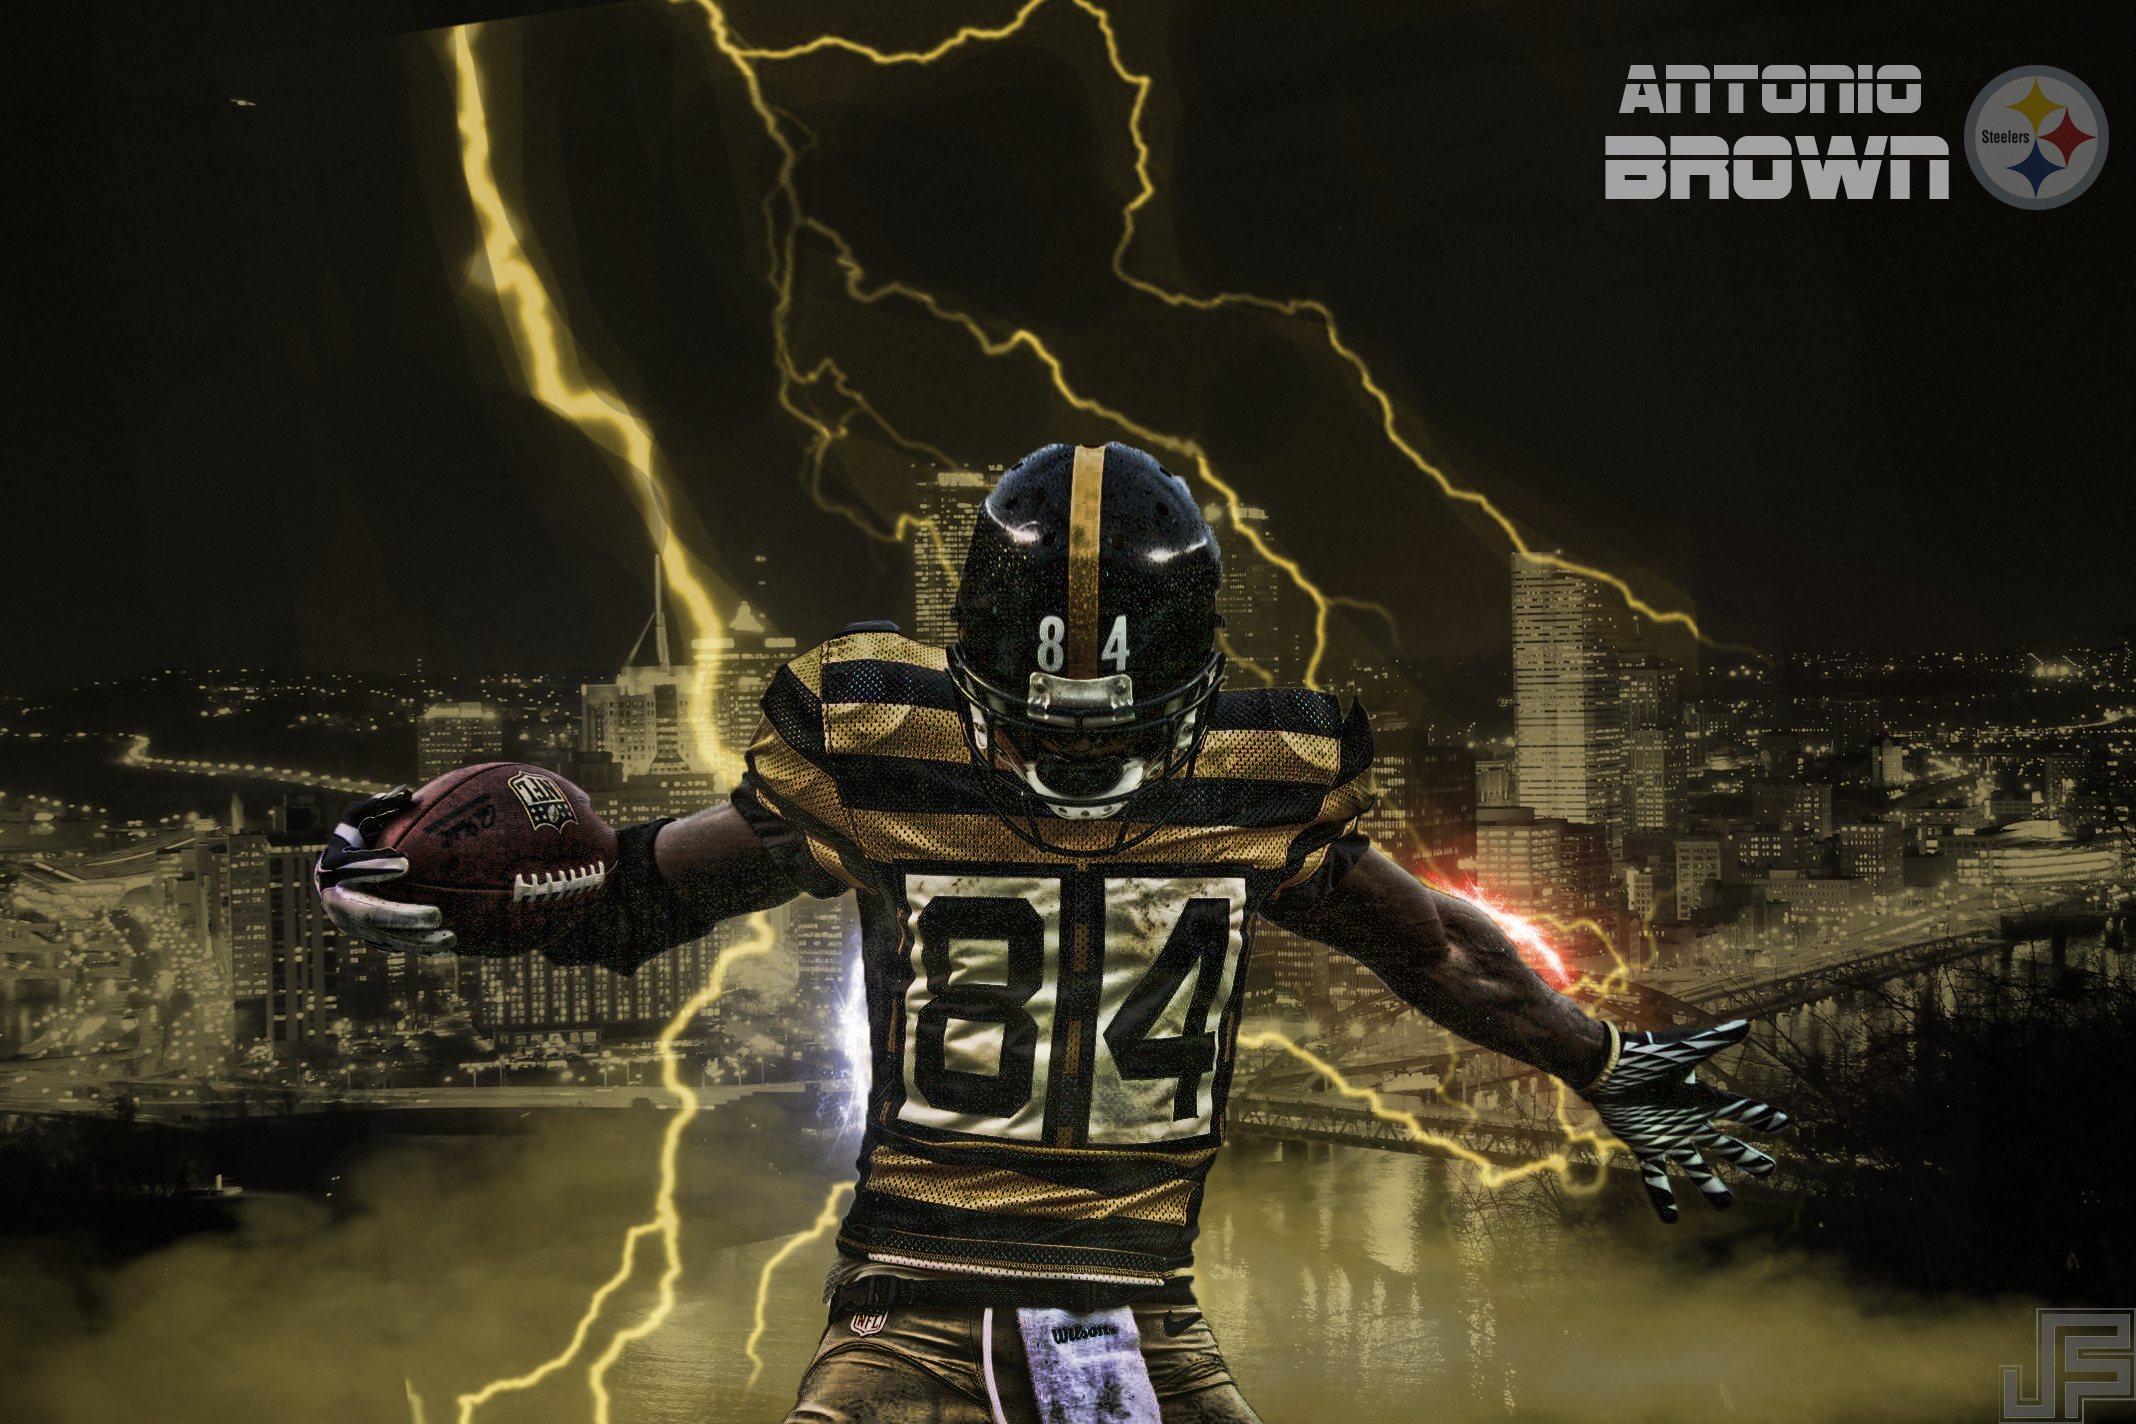 antonio brown wallpaper  9 Antonio Brown HD Wallpapers | Background Images - Wallpaper Abyss